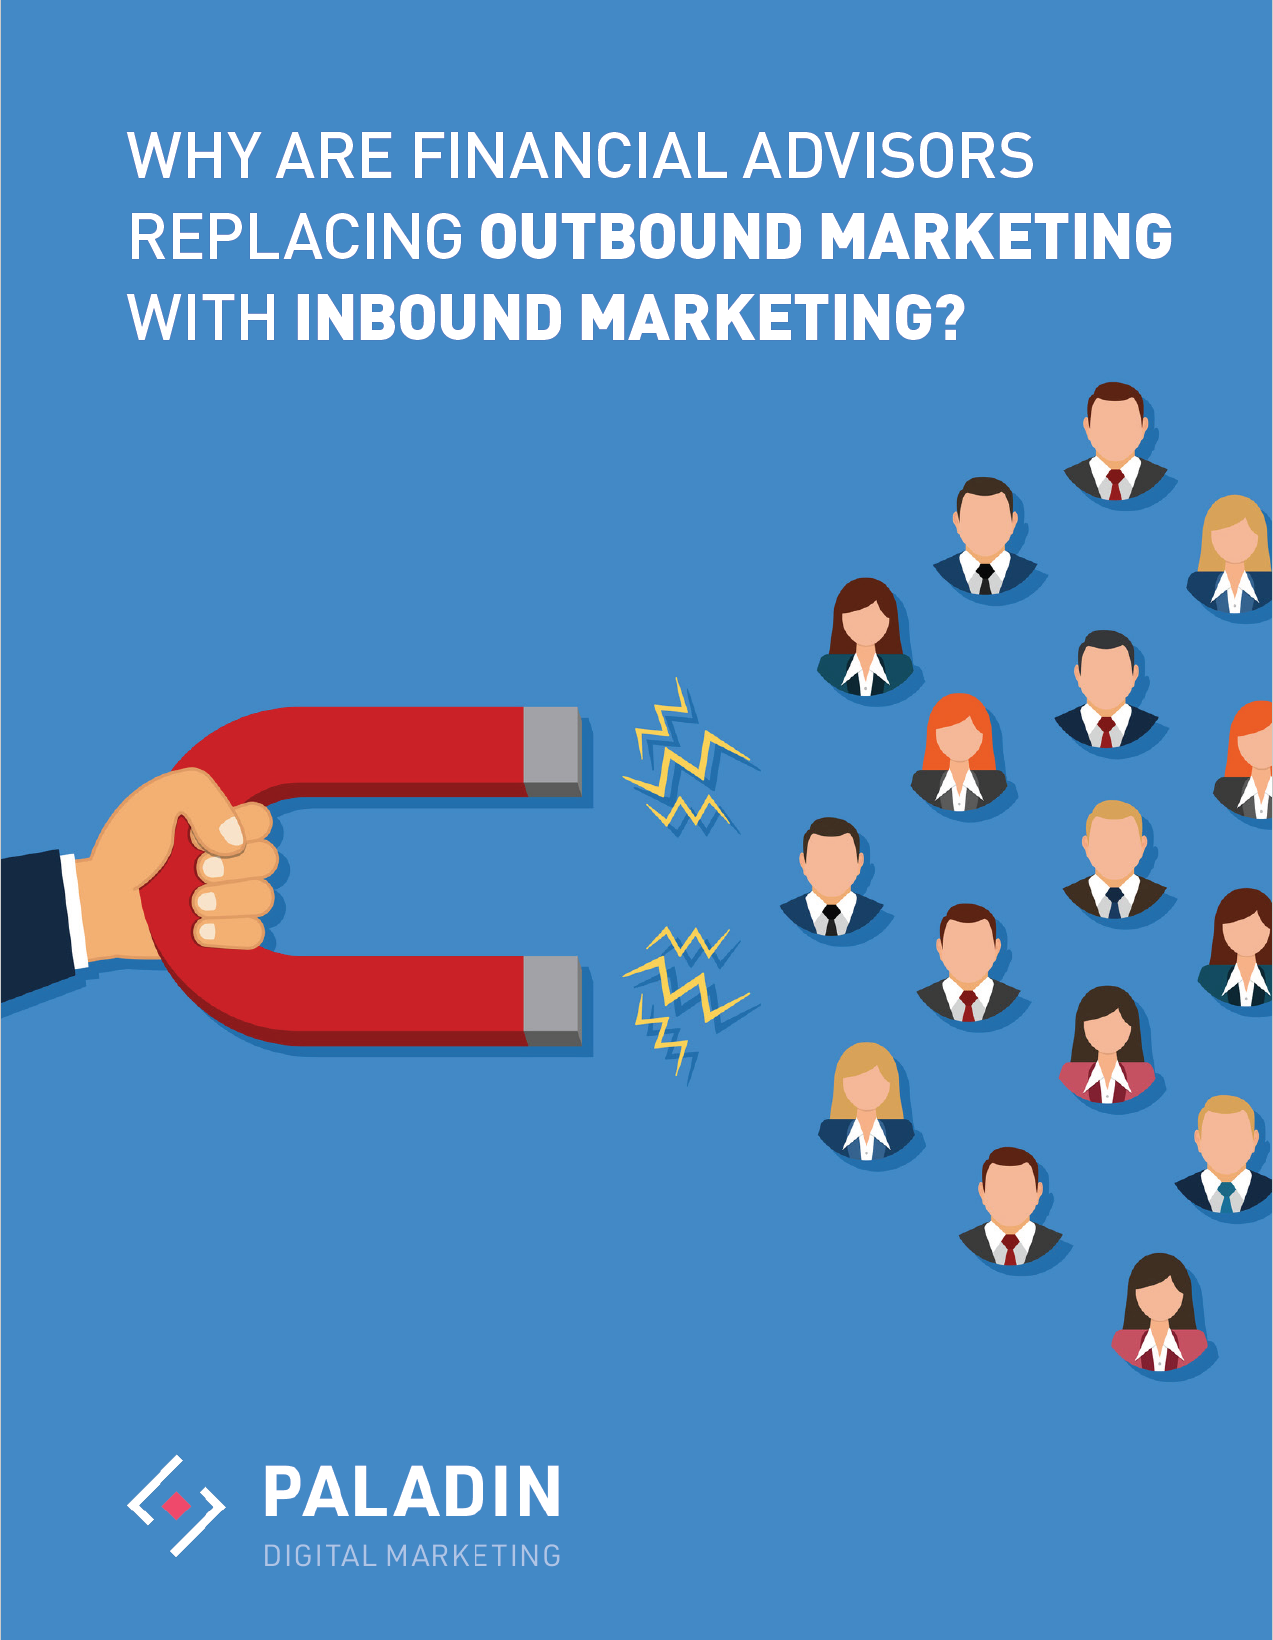 Why Are Financial Advisors Replacing Outbound Marketing With Inbound Marketing.